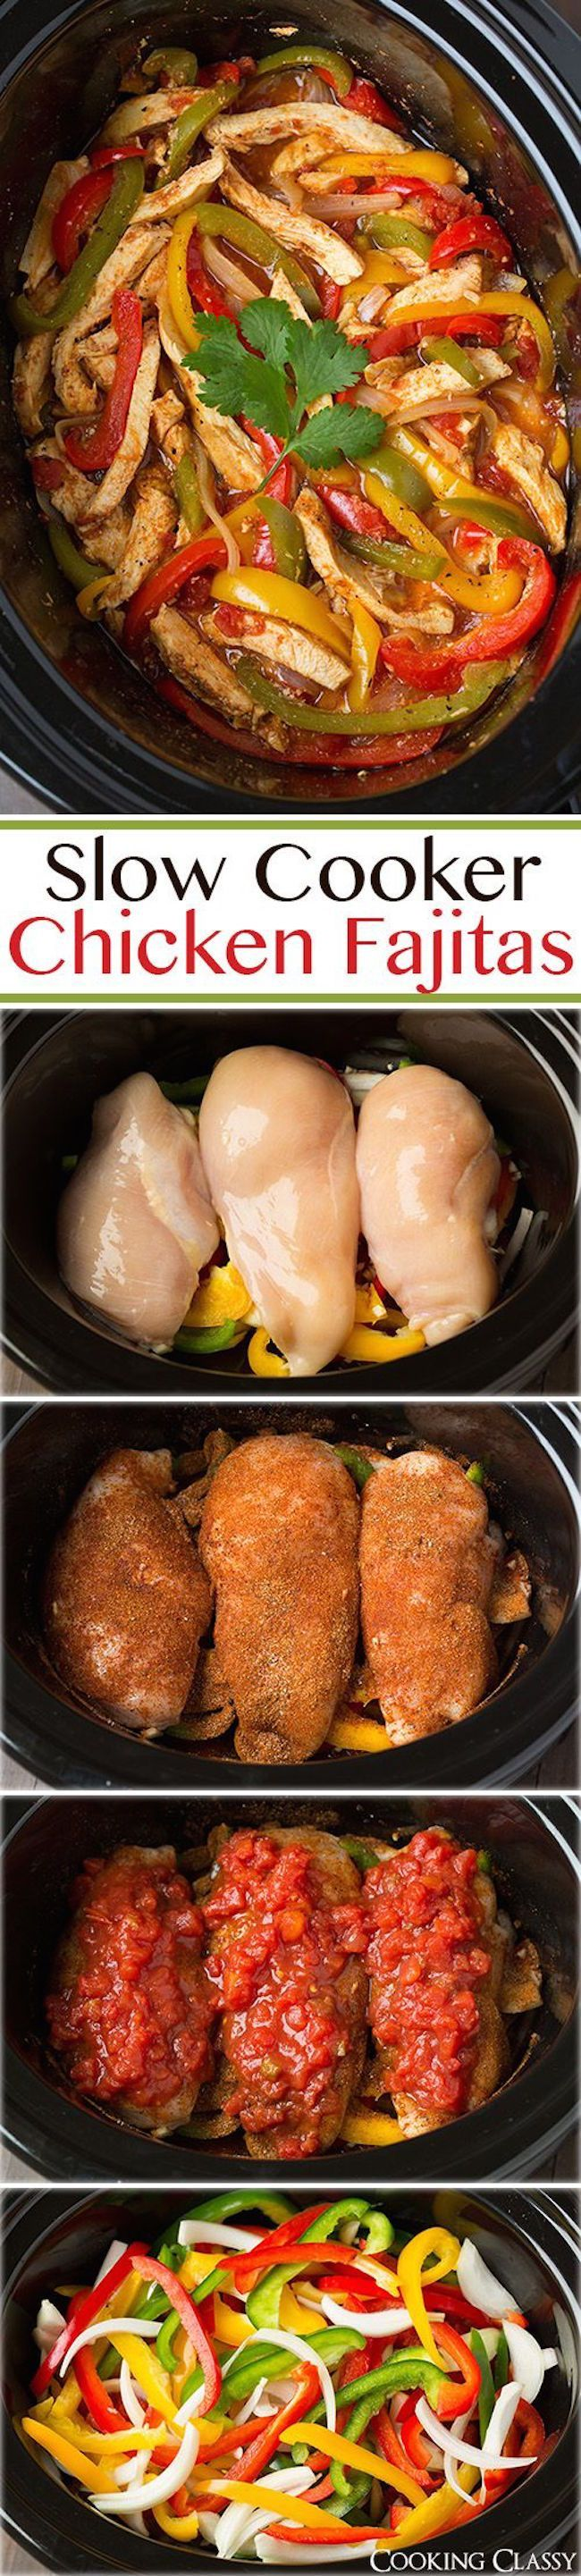 Slow Cooker Chicken Fajitas http://www.recipenation.net